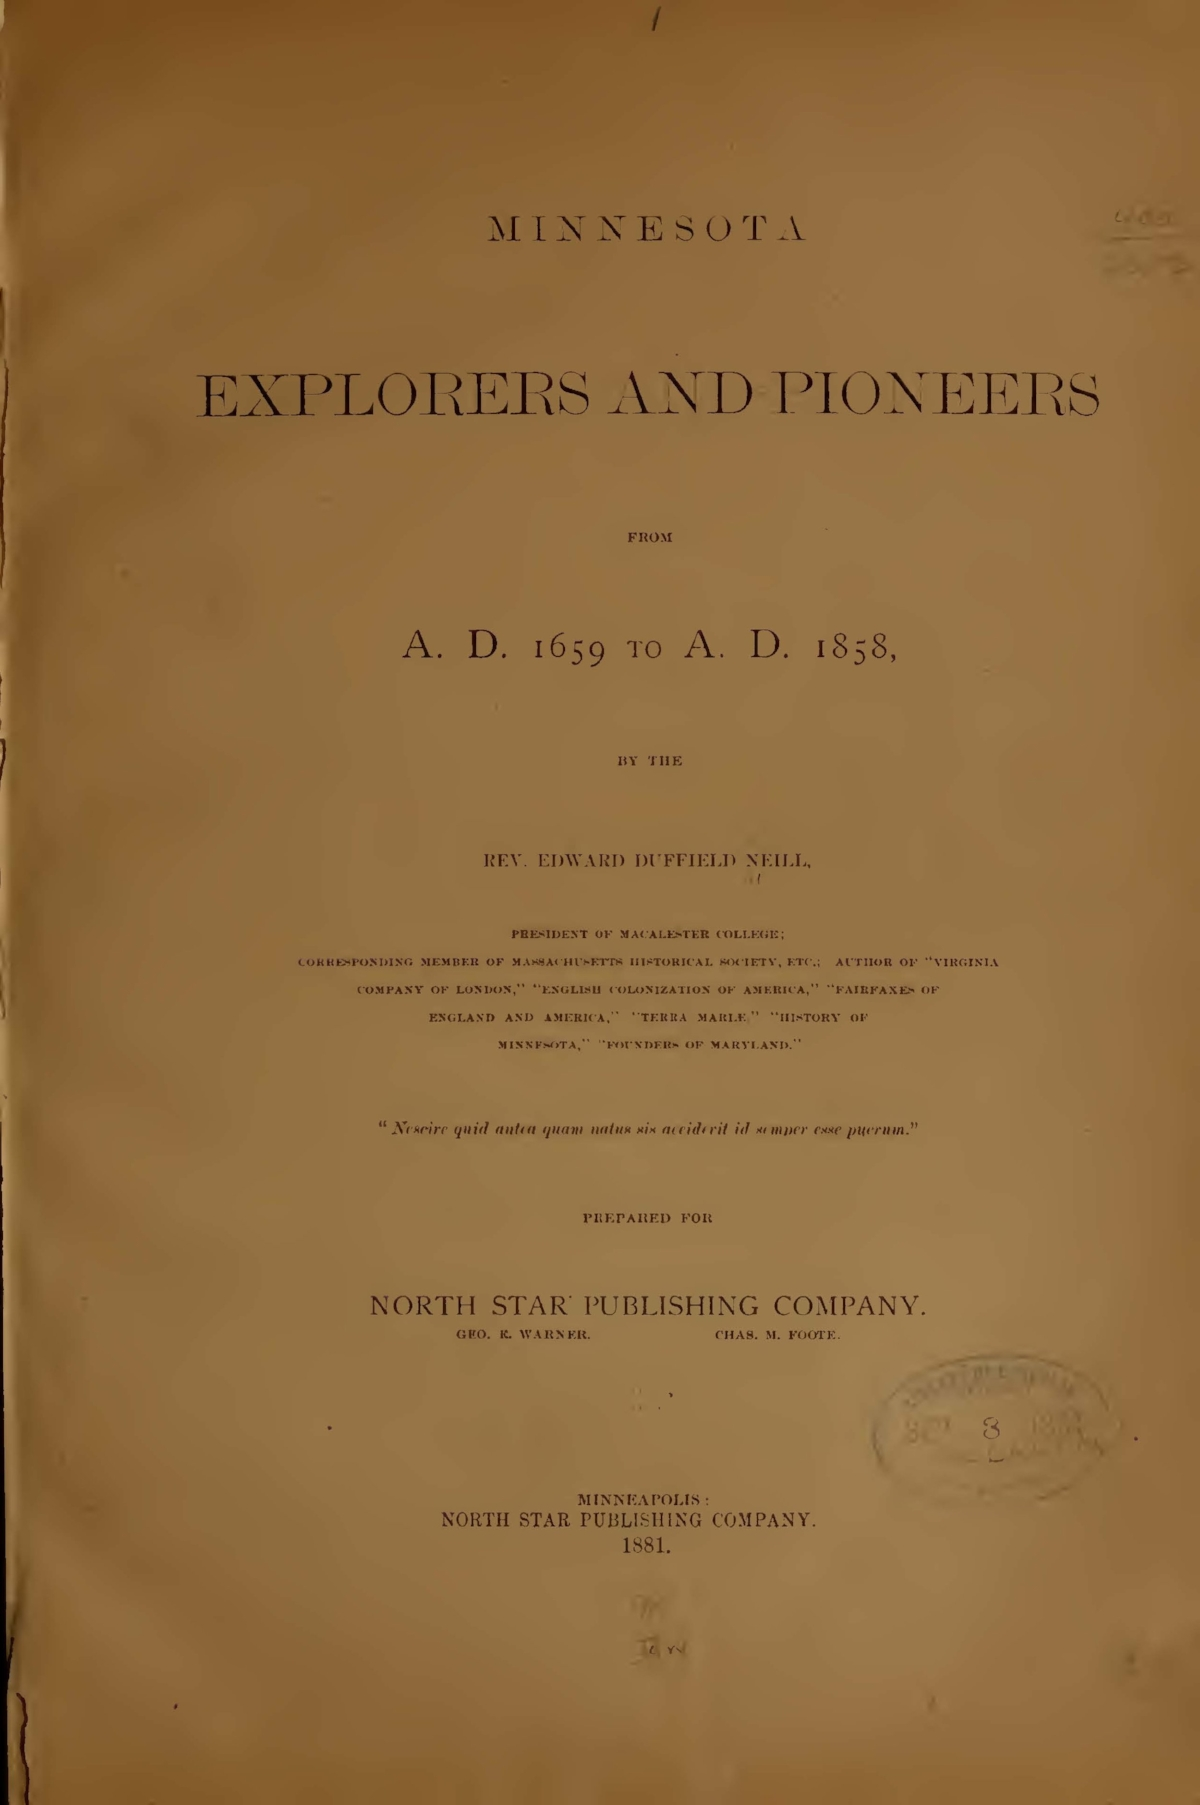 Neill, Edward Duffield, Minnesota Explorers and Pioneers from A.D. 1659 to A.D. 1858 Title Page.jpg